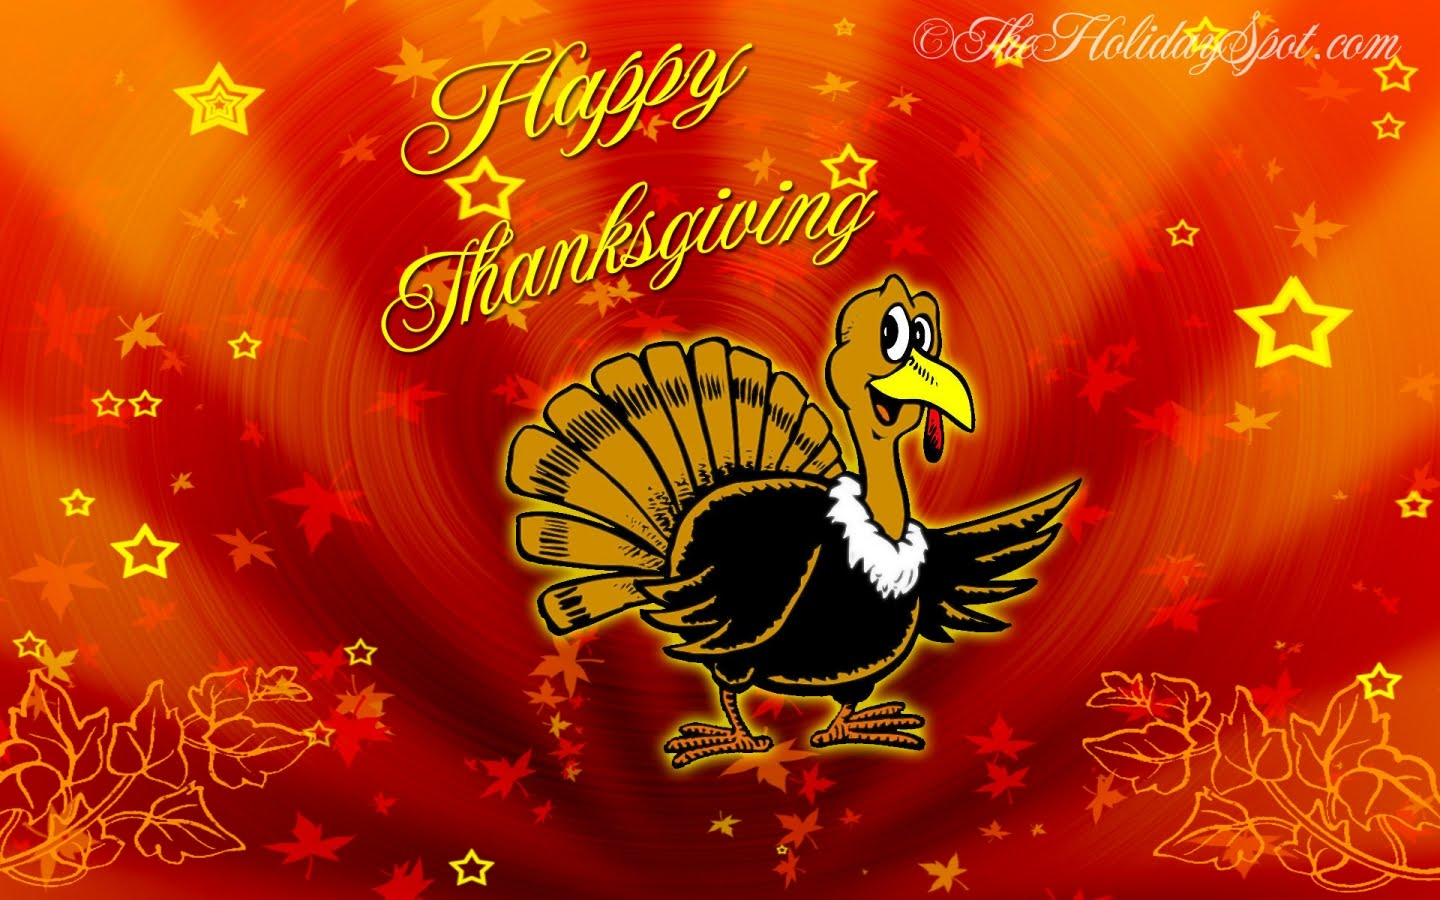 http://1.bp.blogspot.com/-0rJ0pkC5yps/UK3_Rta3BlI/AAAAAAAAMjs/pU_2UiuvV3w/s1600/Happy_Thanksgiving_Day_Wallpaper_1440x900_wallpaperhere.jpg